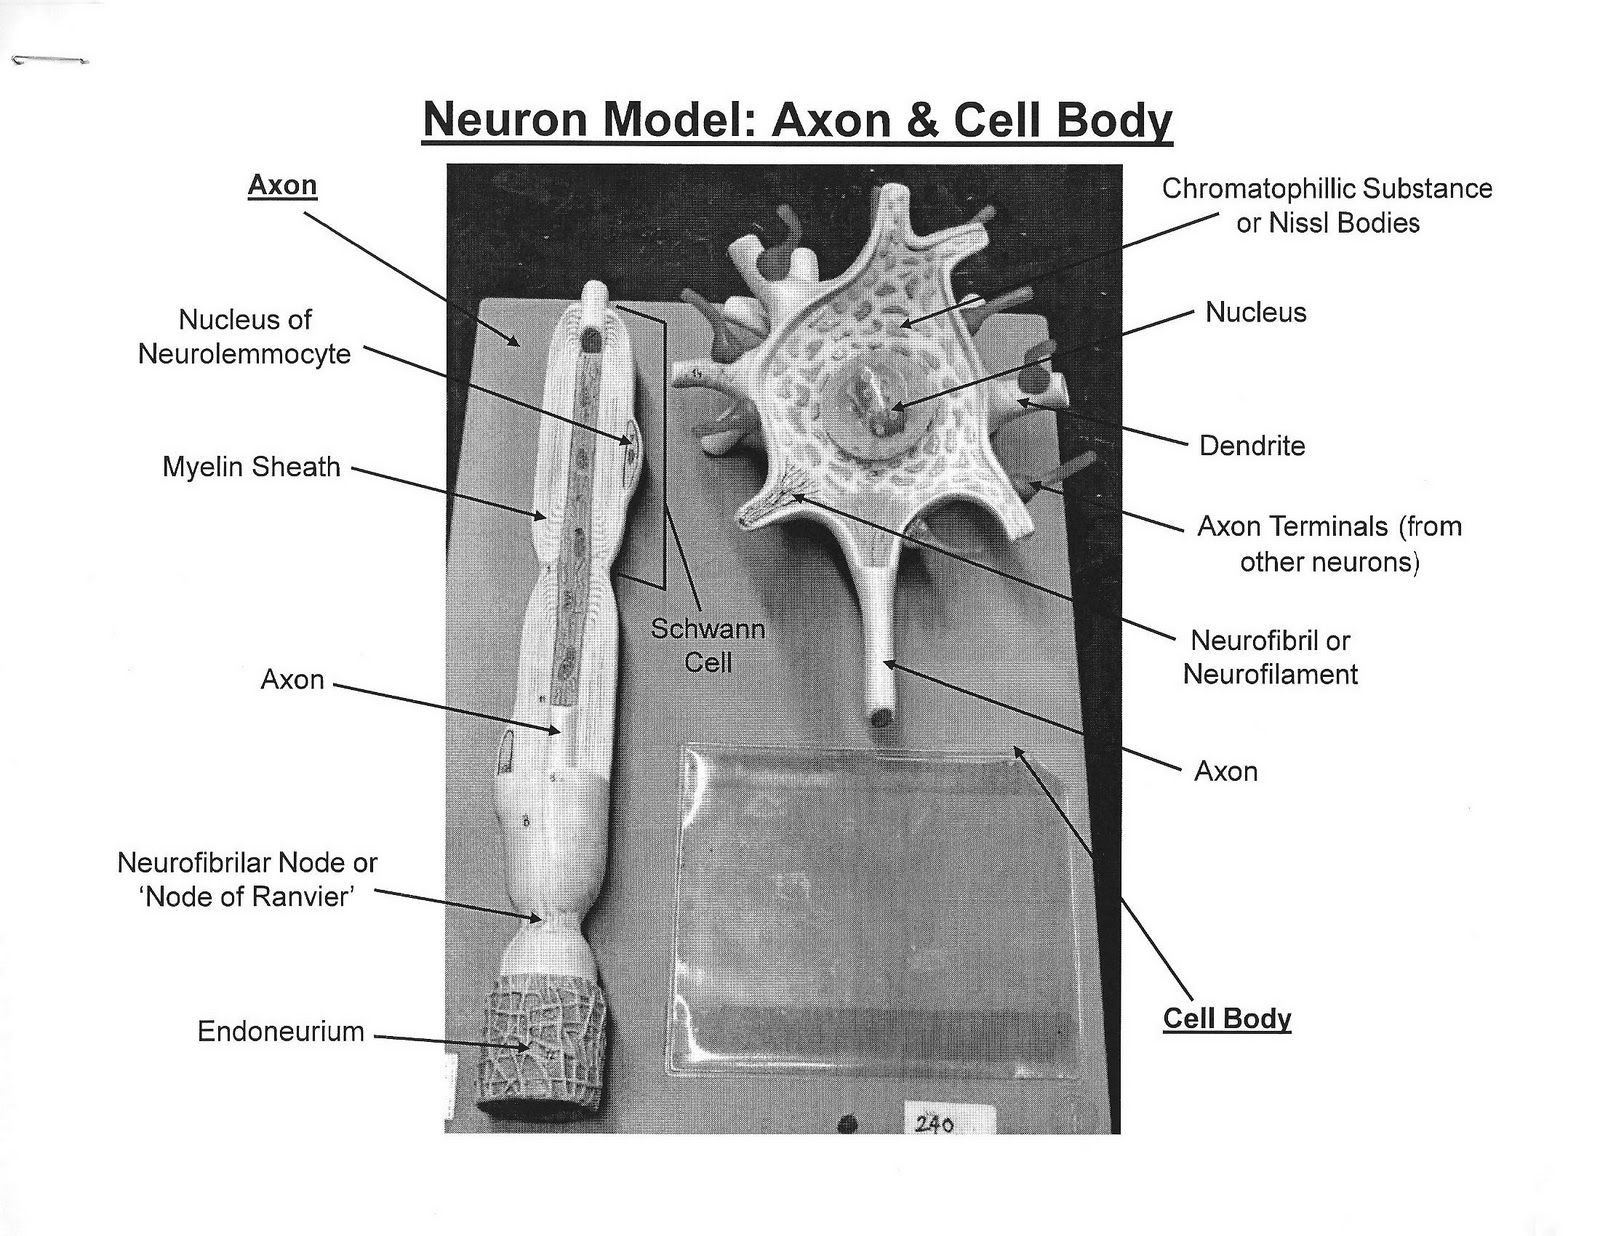 multipolar neuron diagram labeled samsung dvr wiring model bing images biology pinterest